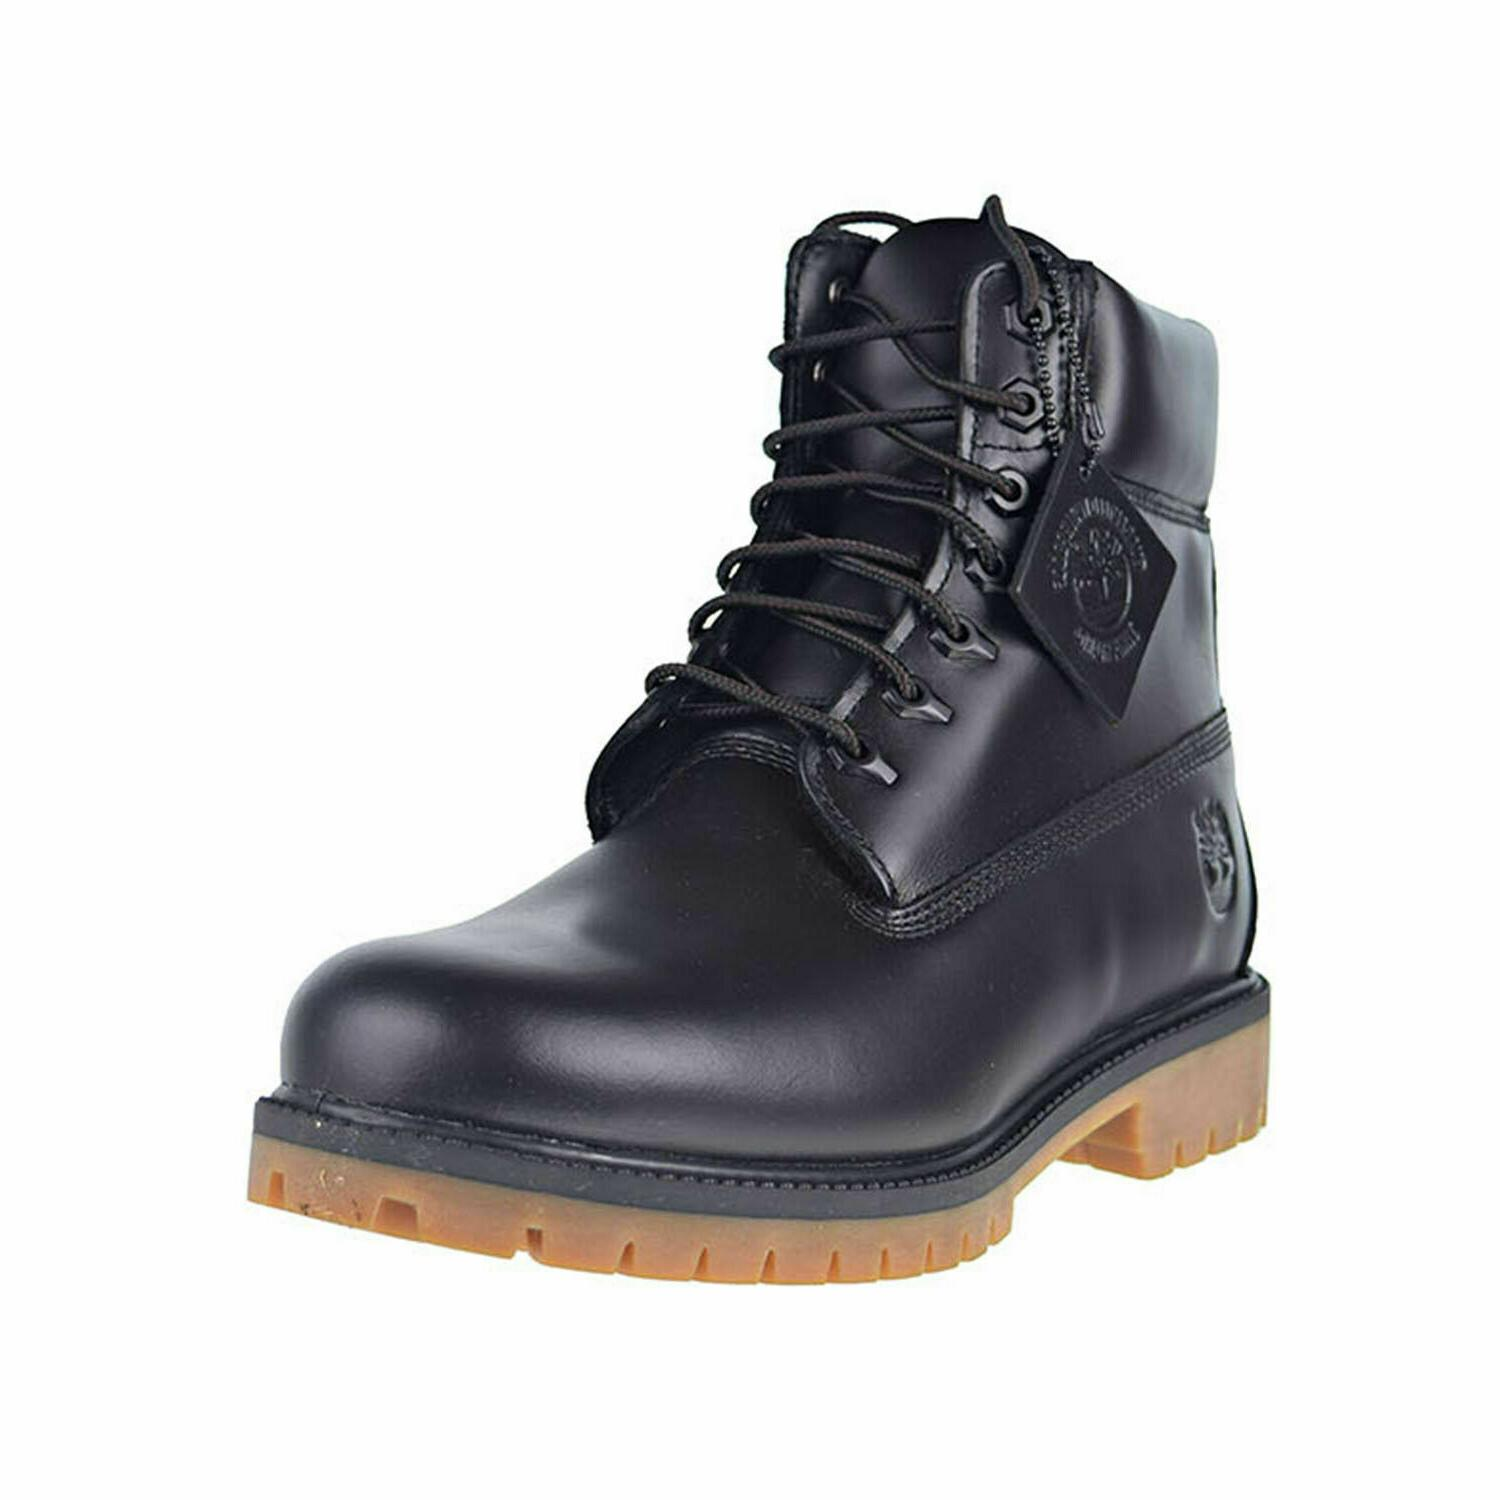 Timberland Heritage Inch WP Men's Boots Black Full